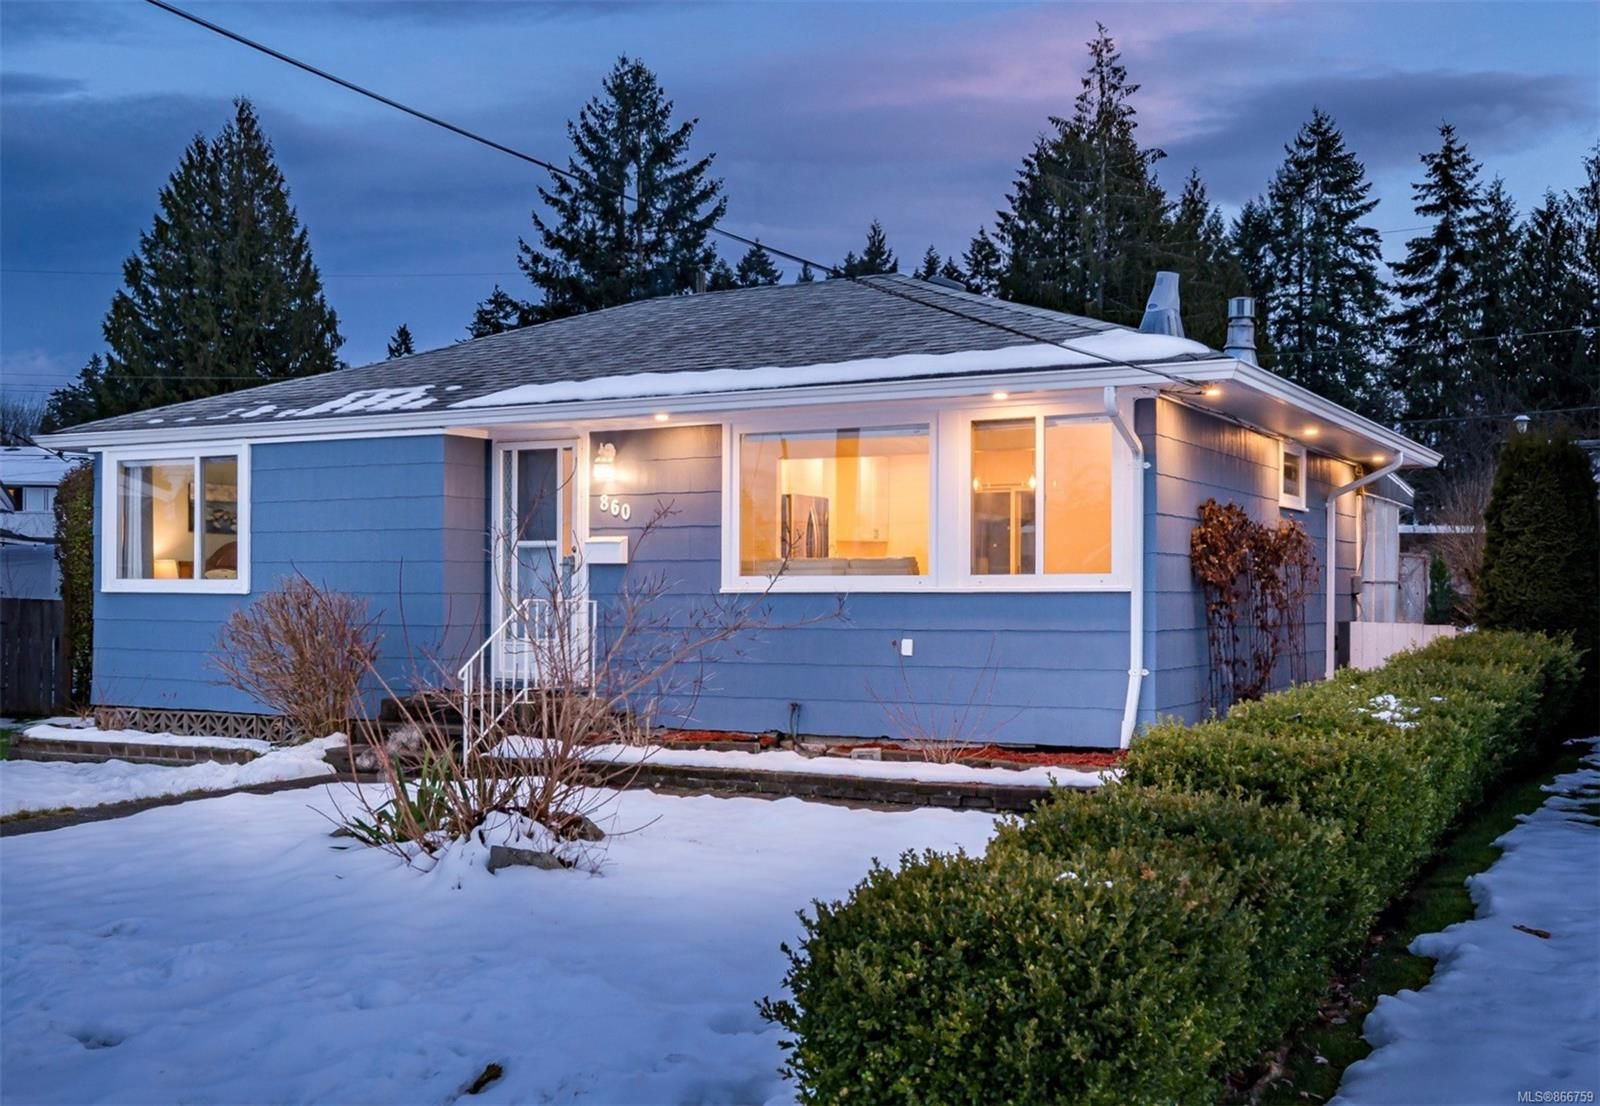 Main Photo: 860 18th St in : CV Courtenay City House for sale (Comox Valley)  : MLS®# 866759